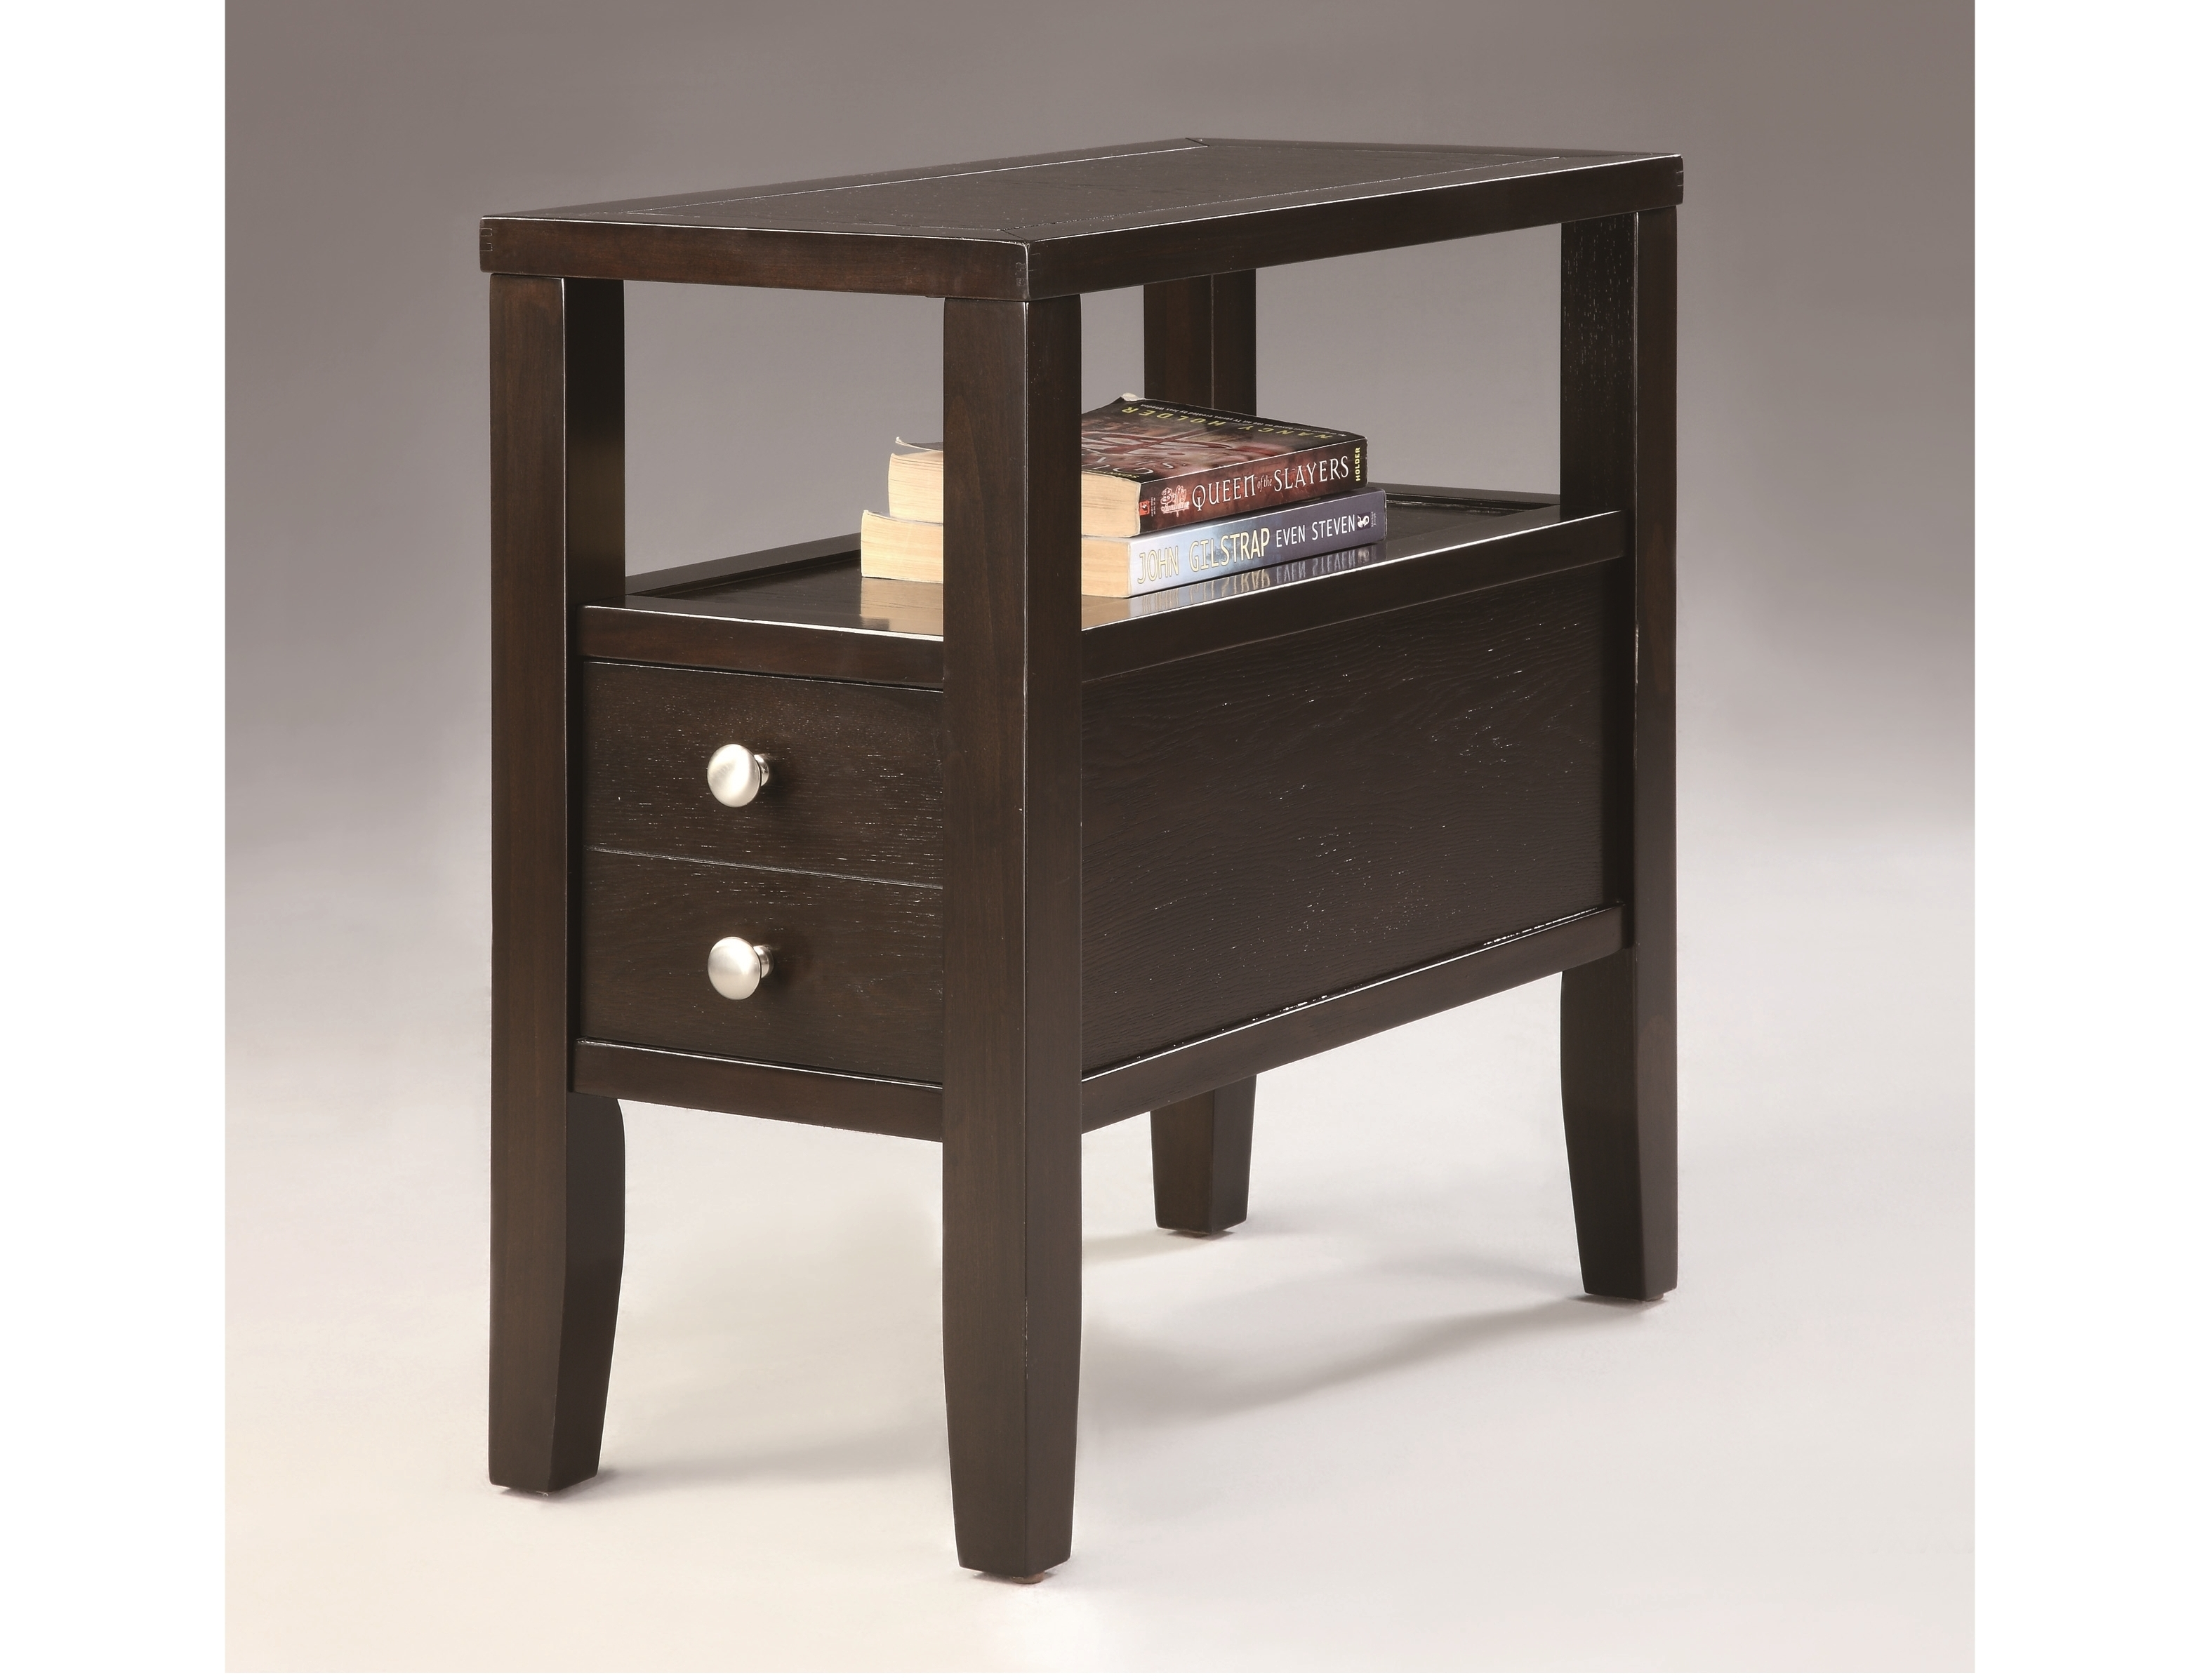 cm7708-chair-side-table-2